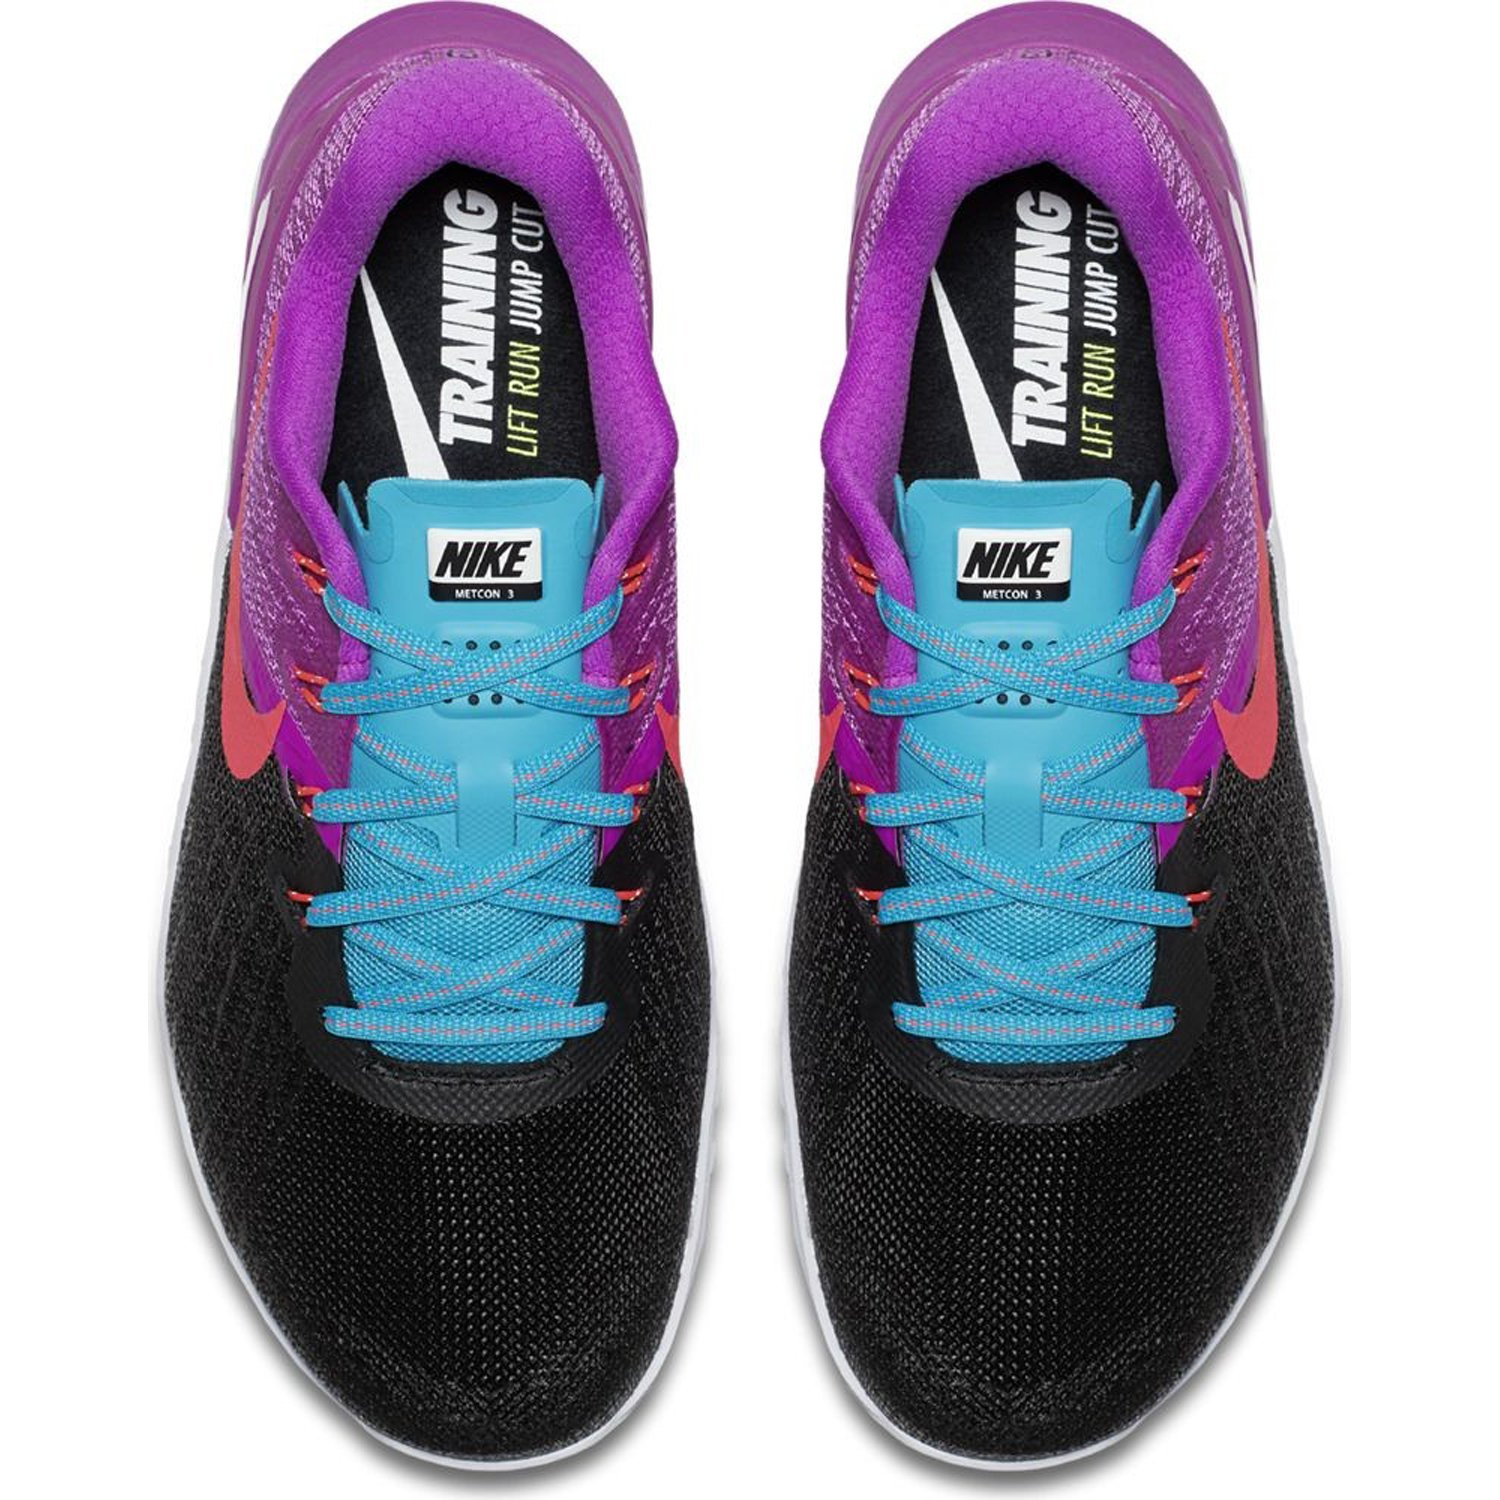 Nike Women's Metcon 3 Training Shoes Black / Racer Pink - Hyper Violet 849807-002 (7) by NIKE (Image #3)